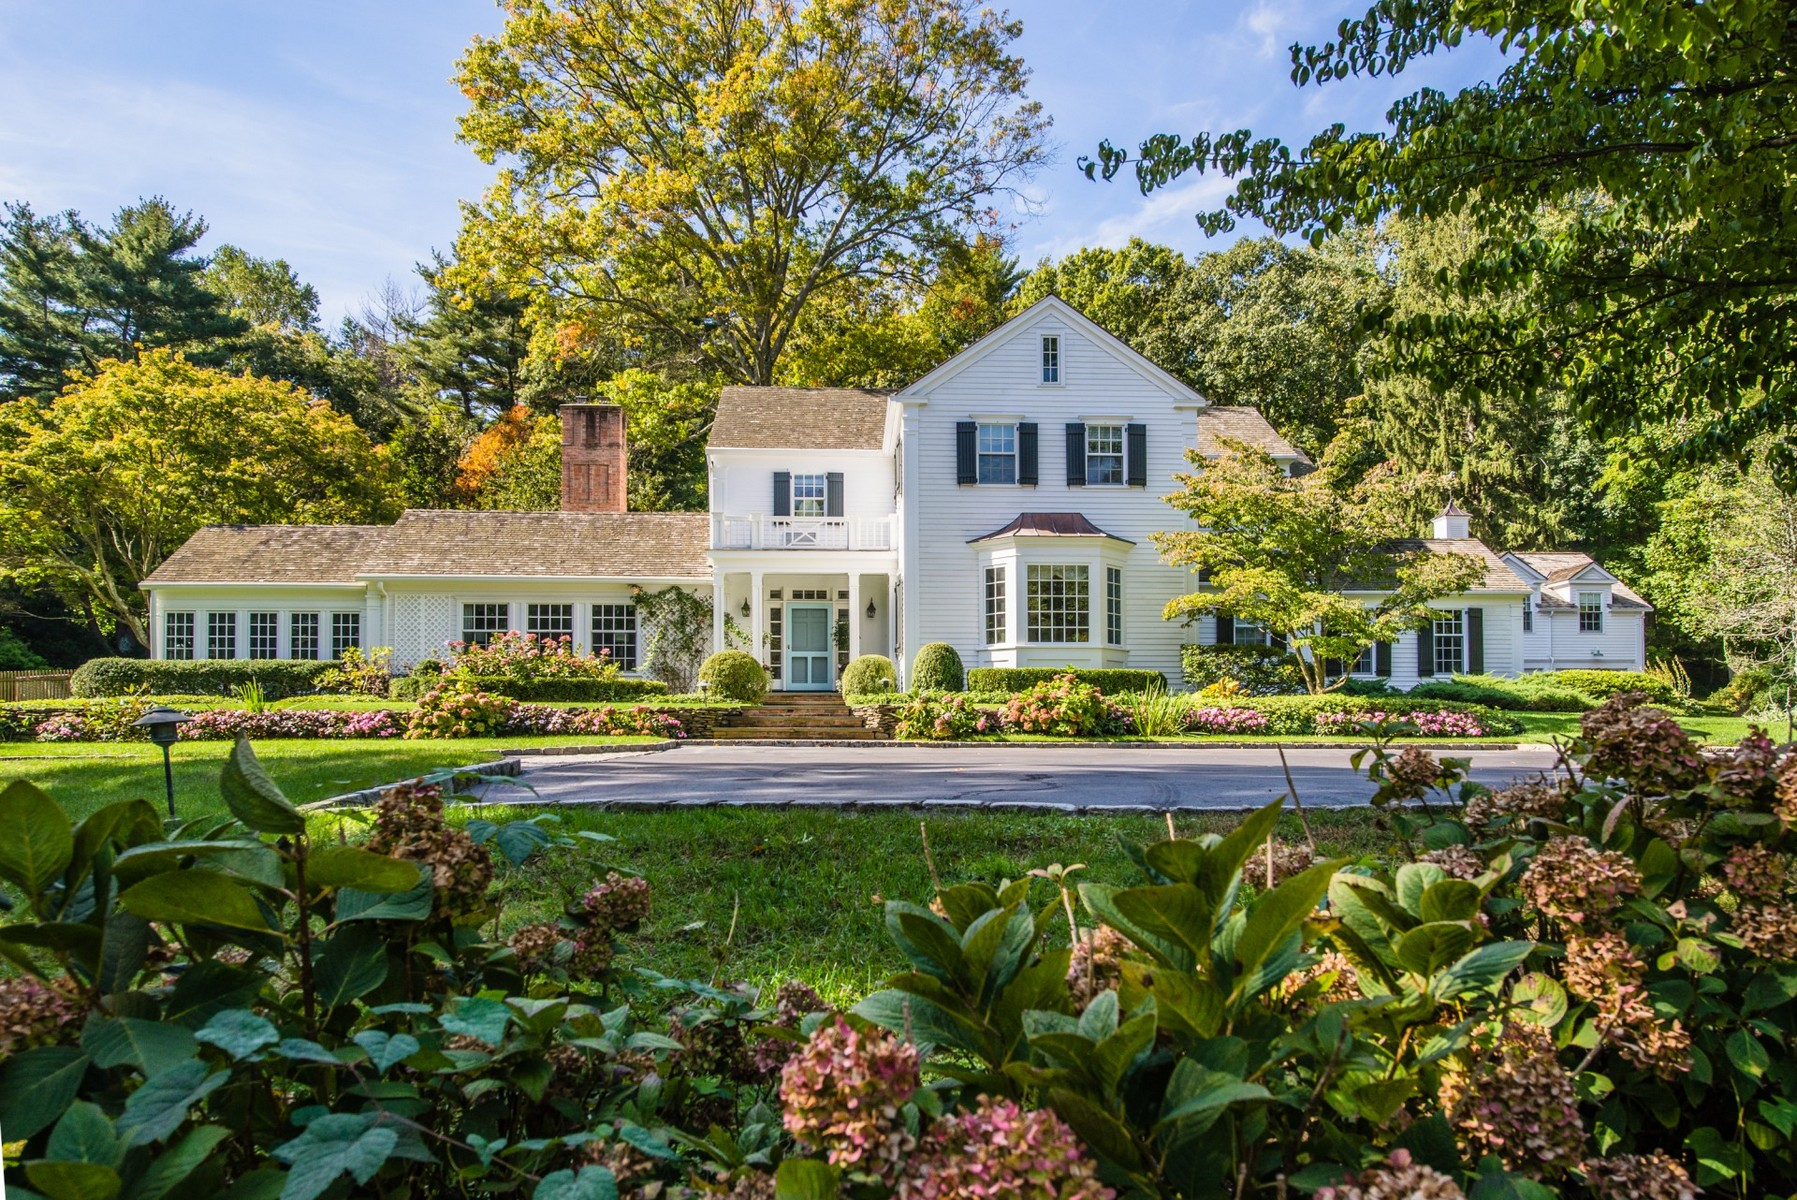 Single Family Home for Sale at Colonial 376 Oyster Bay Rd Matinecock, New York, 11560 United States